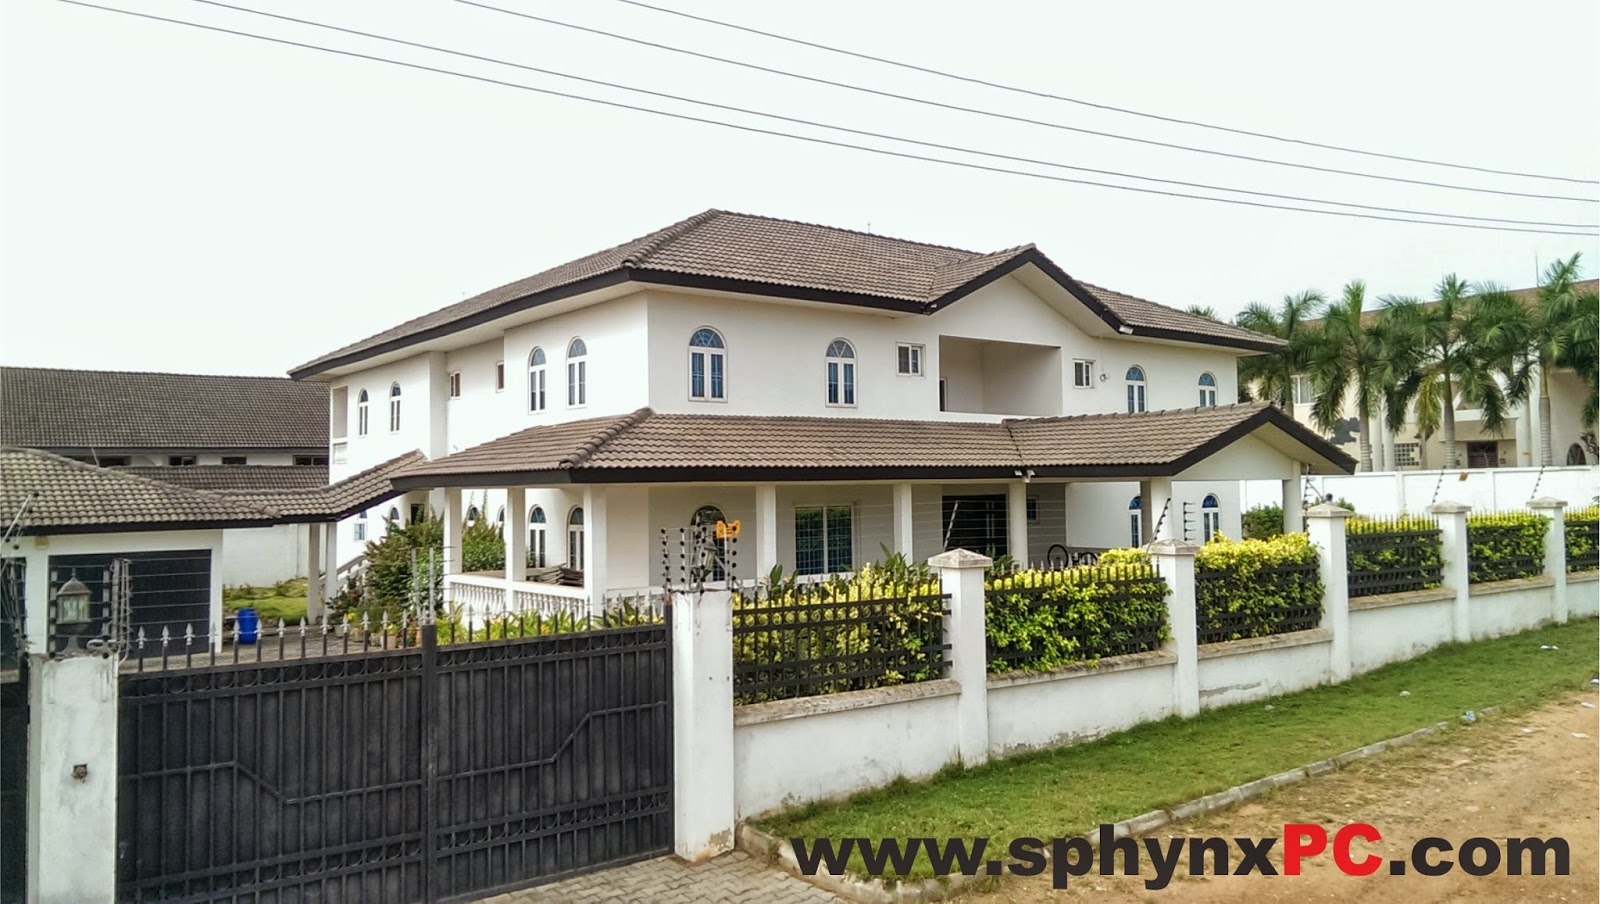 Modern homes in ghana related keywords suggestions New modern houses for sale